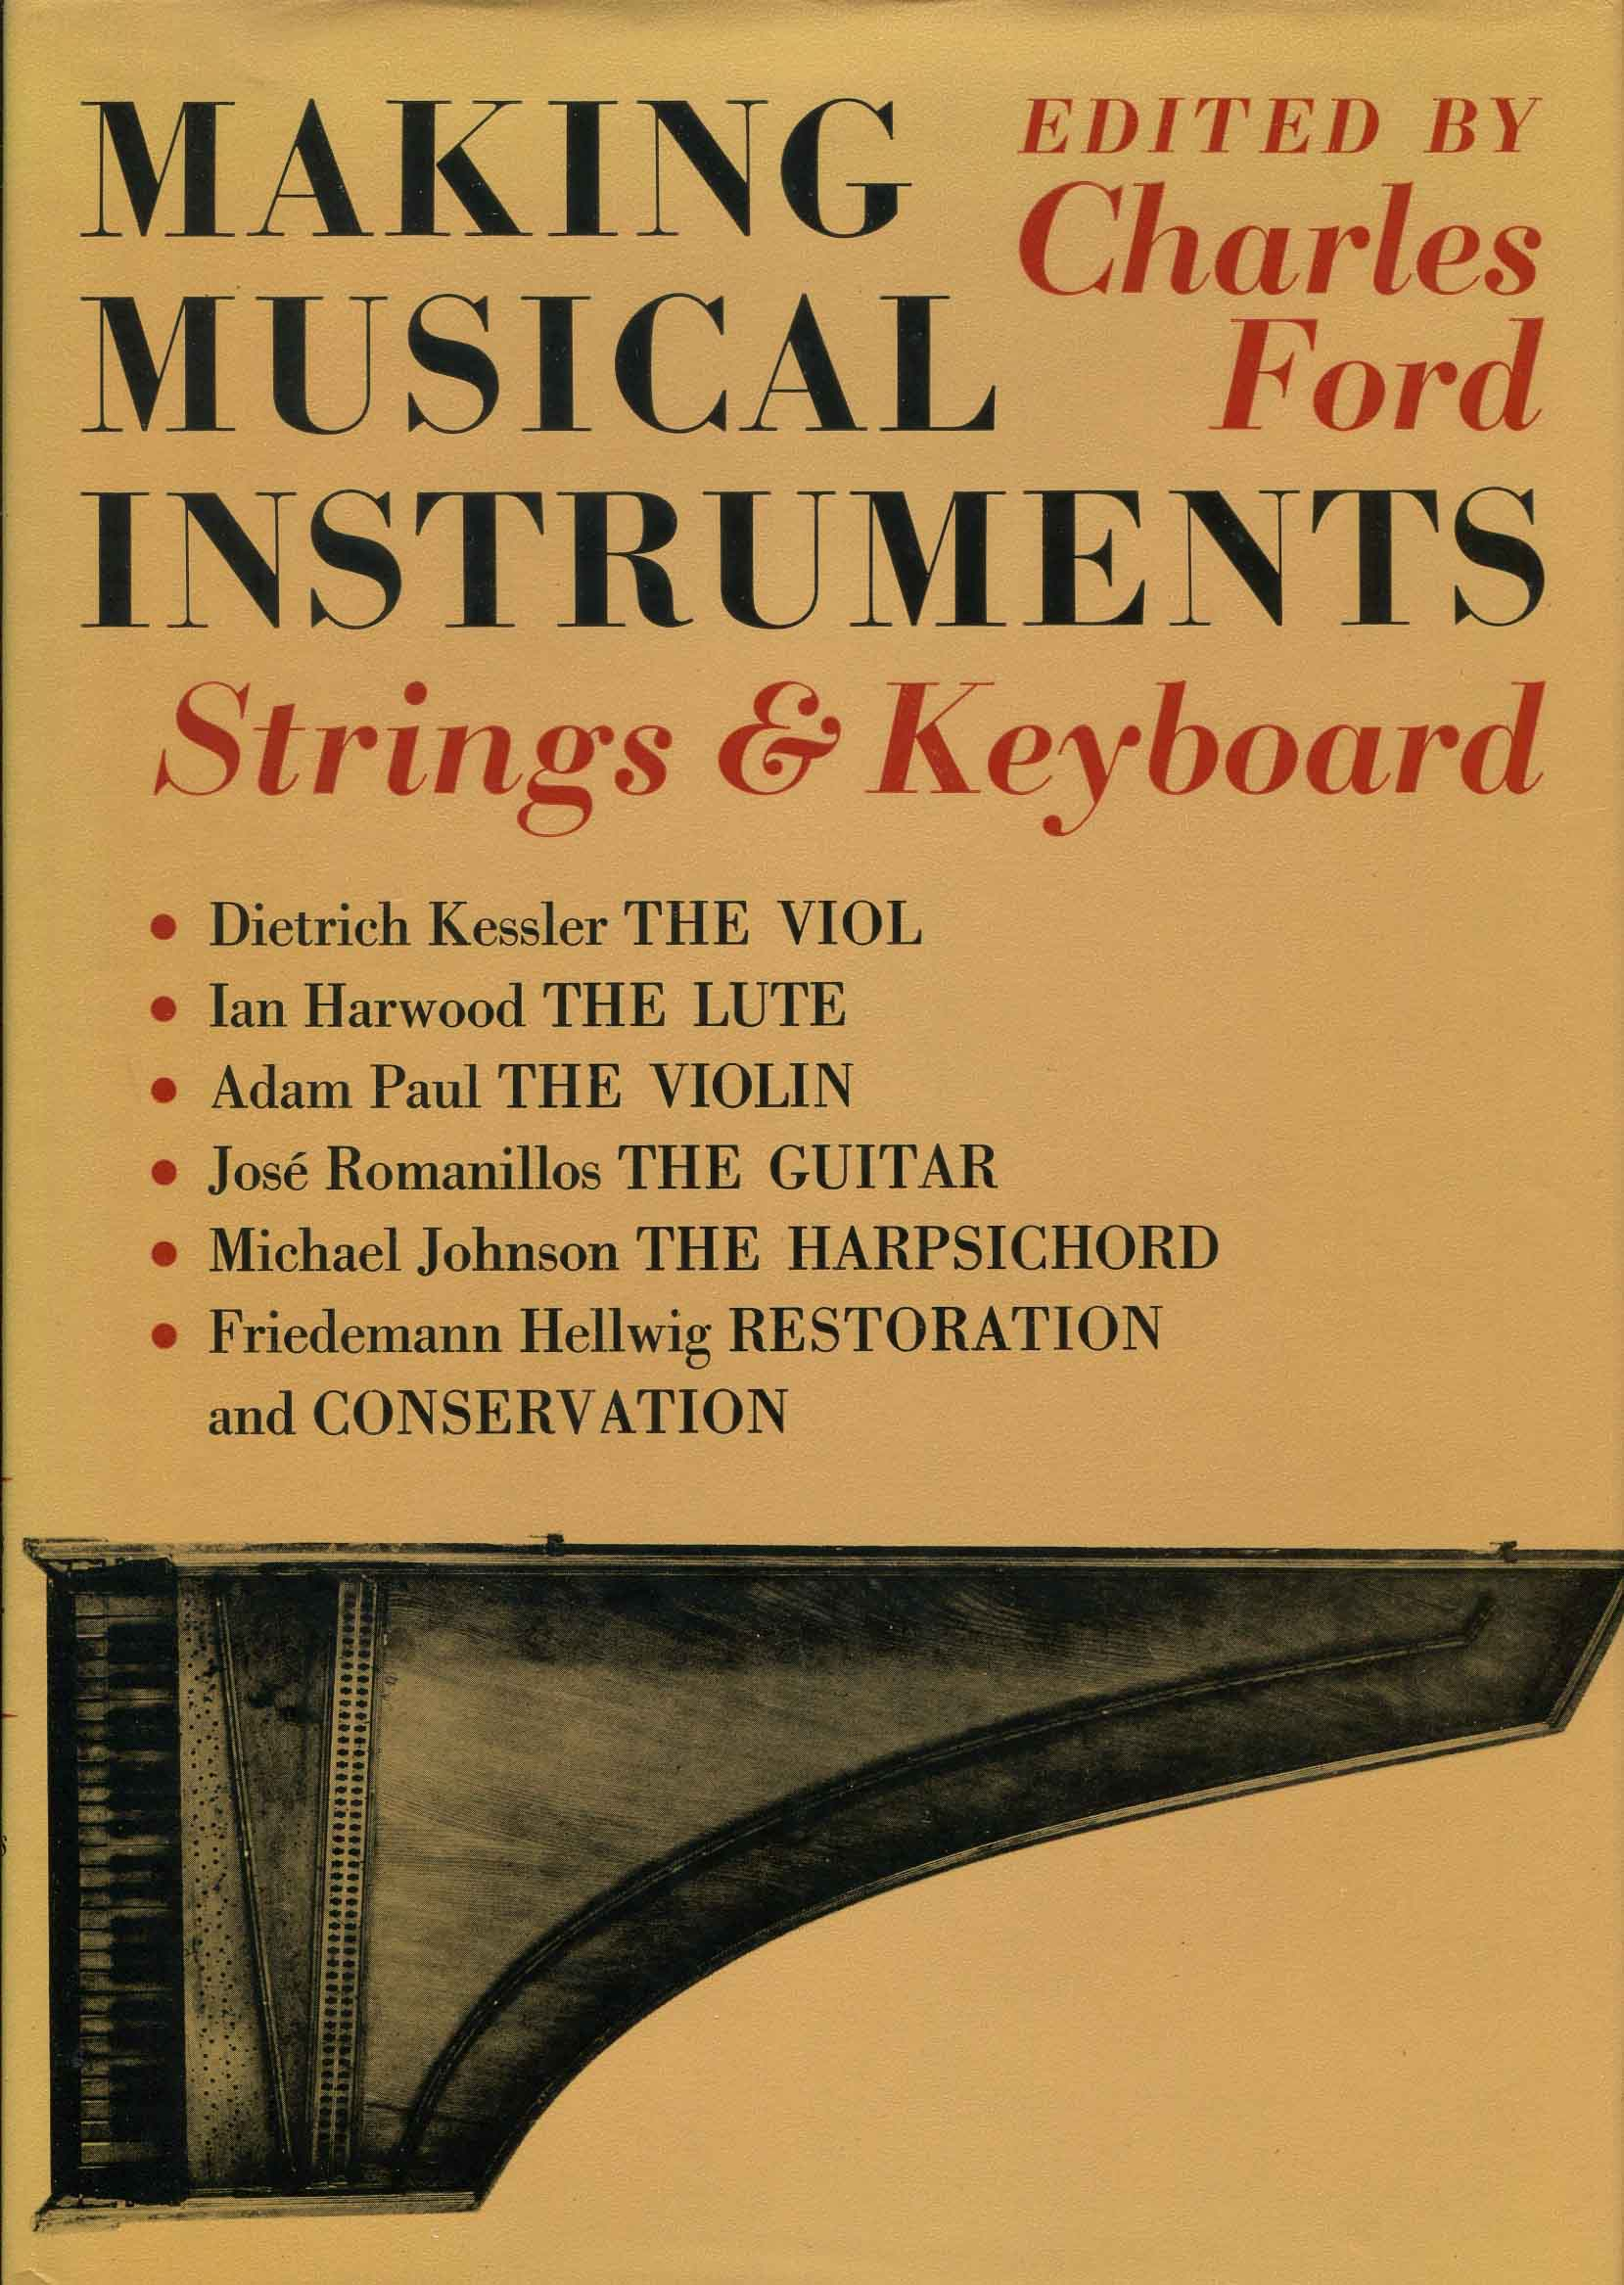 Making musical instruments, strings and keyboard / edited by Charles Ford ; with a foreword by Anthony Baines